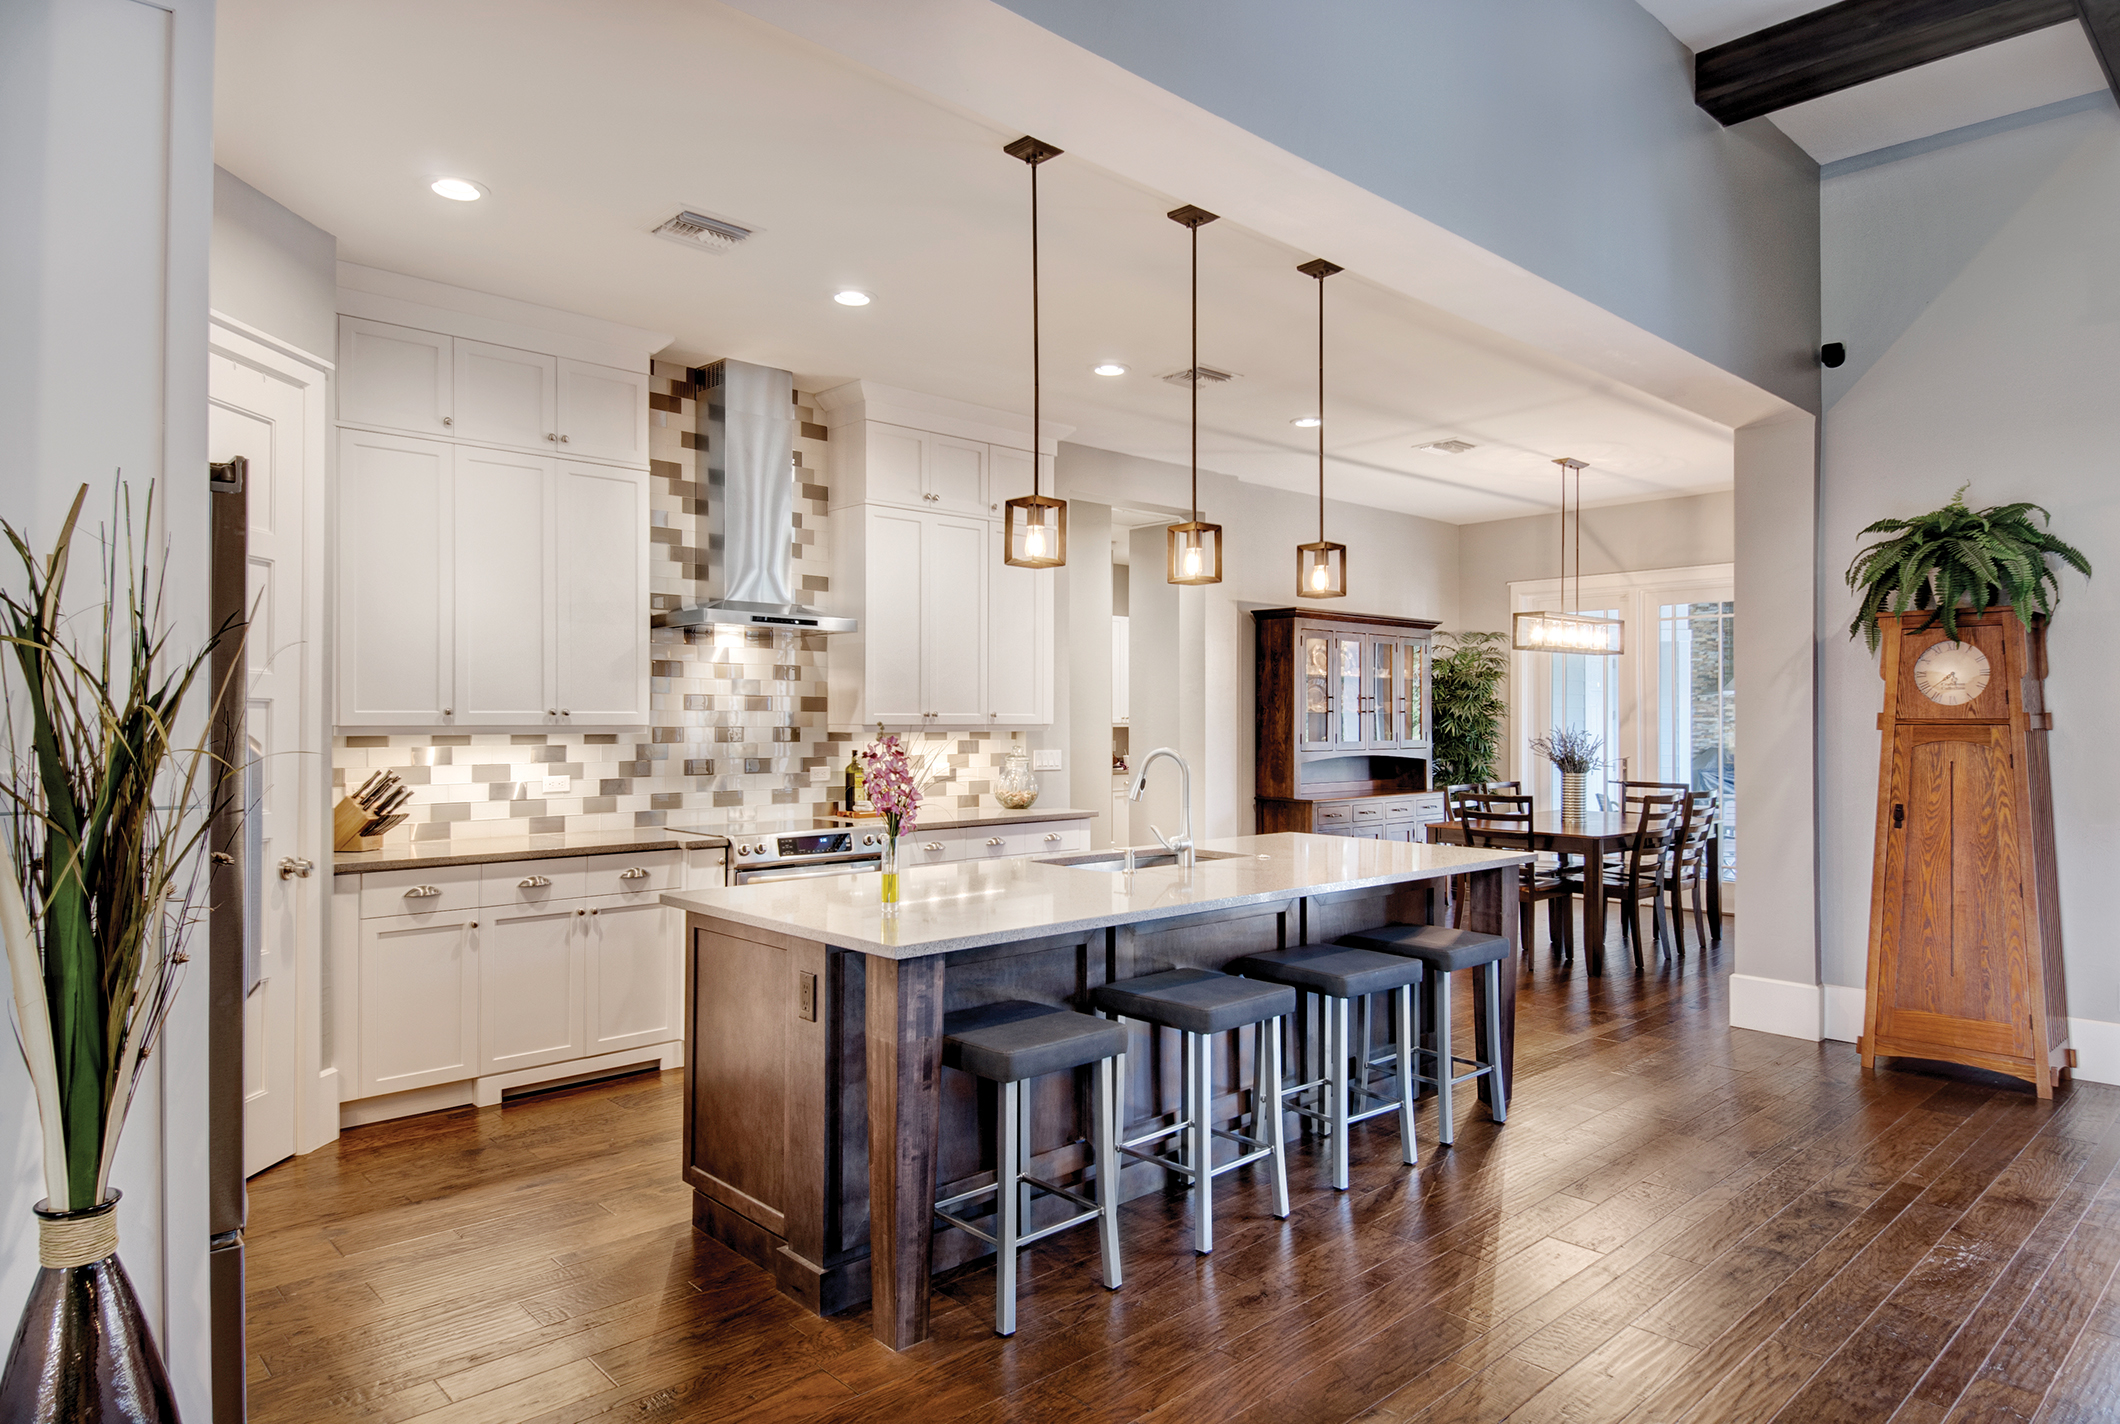 """The great room flows directly into the airy kitchen. Shaker-style cabinetry is set against a subway tile backsplash with metallic accent tiles. A modern stainless steel hood and Edison bulb lights are a perfect example of how modern and traditional elements blend seamlessly in this home. In the nook, a handmade Amish hutch was custom built for the space by the Millers in Sarasota. """"We were familiar with the family who made the piece because of our time in Amish country in Ohio. They make such high-quality furniture pieces that it's an instant heirloom. We commissioned them to make a few pieces throughout the home."""""""